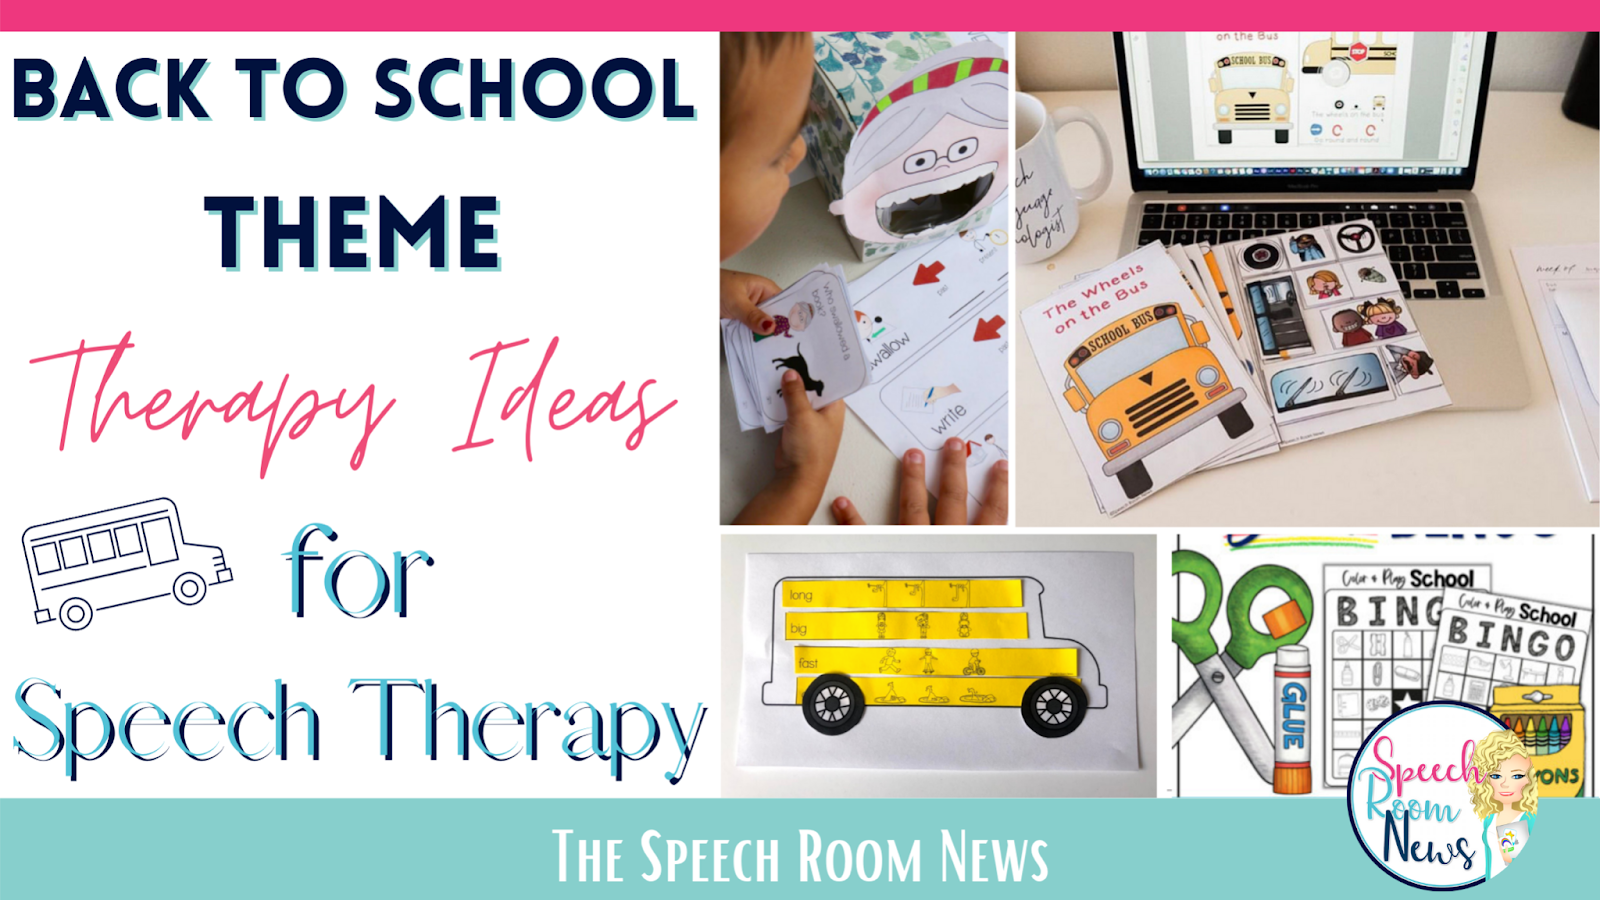 Back to School Theme Therapy Ideas for Speech Therapy